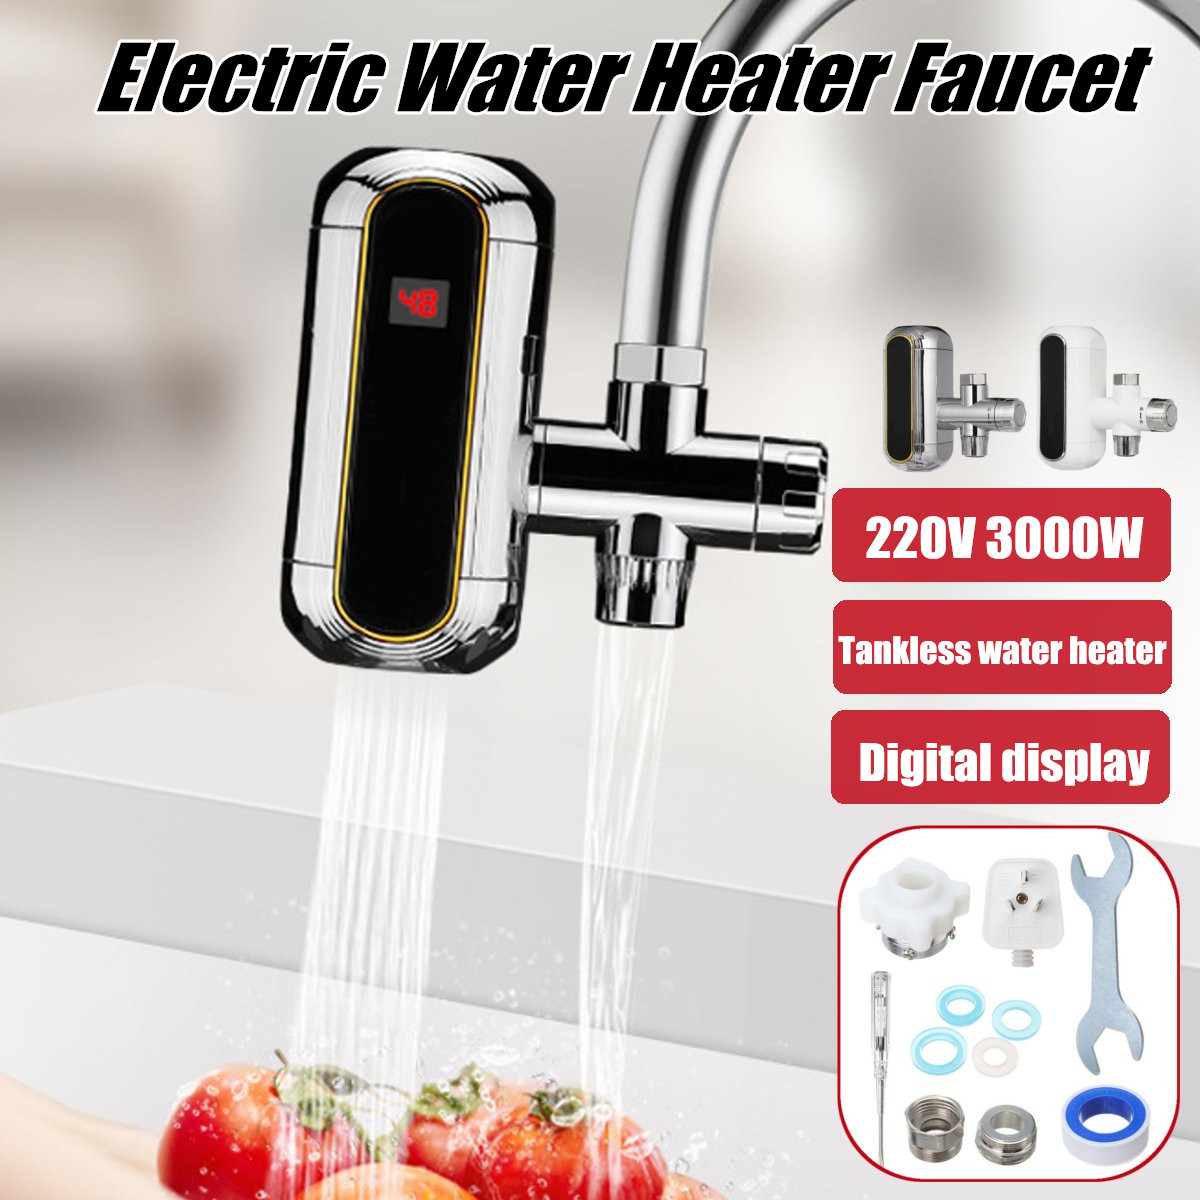 3000W Electric Water Heater Tankless Kitchen Instant Hot Water Tap Heater Electric Water Faucet Heating tap 220v3000W Electric Water Heater Tankless Kitchen Instant Hot Water Tap Heater Electric Water Faucet Heating tap 220v